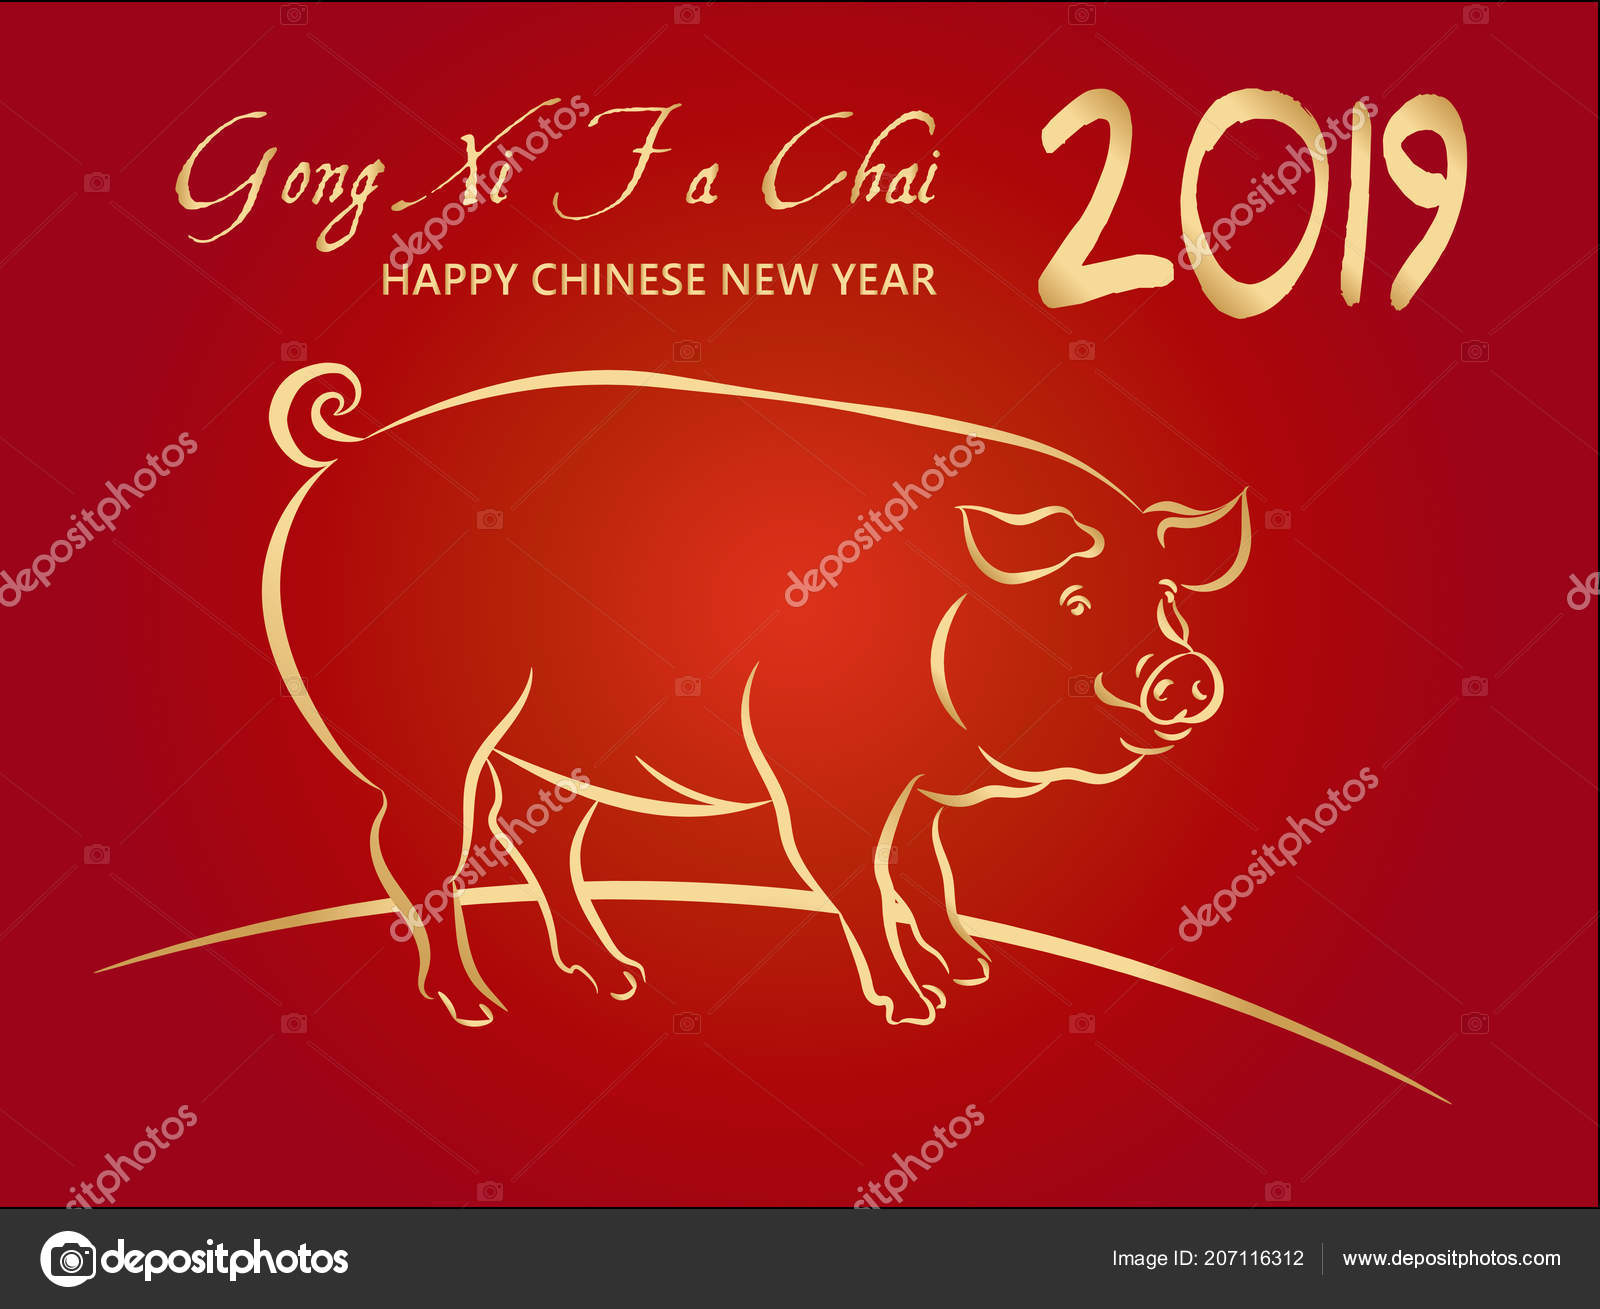 2019 Happy Chinese New Year Year Pig Greeting Card Gold Stock